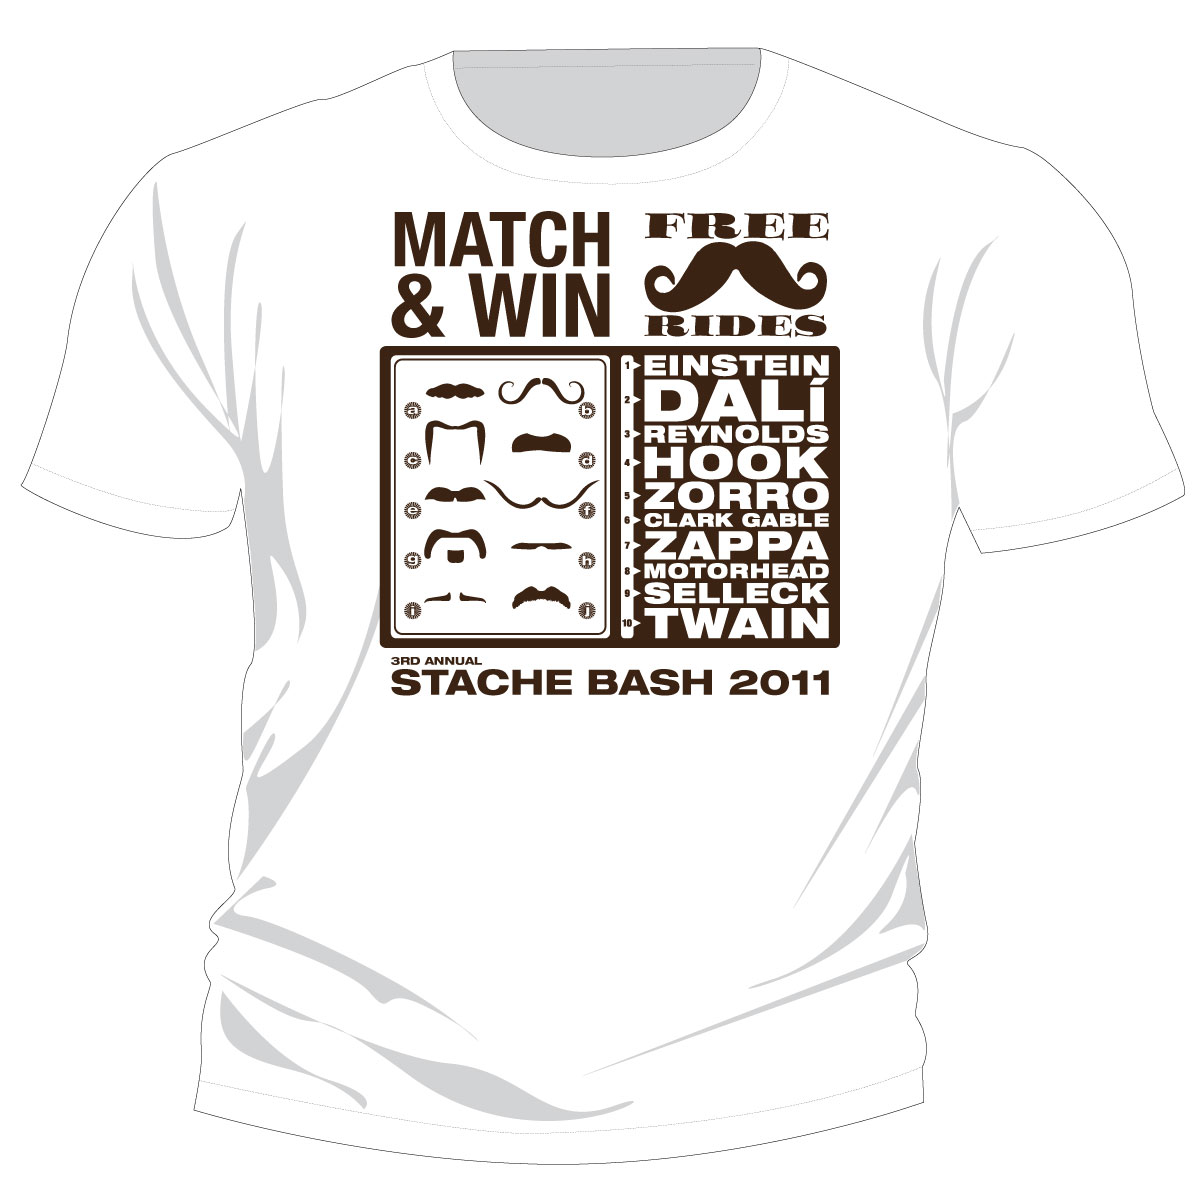 2011 Shirt Design: Match & Win